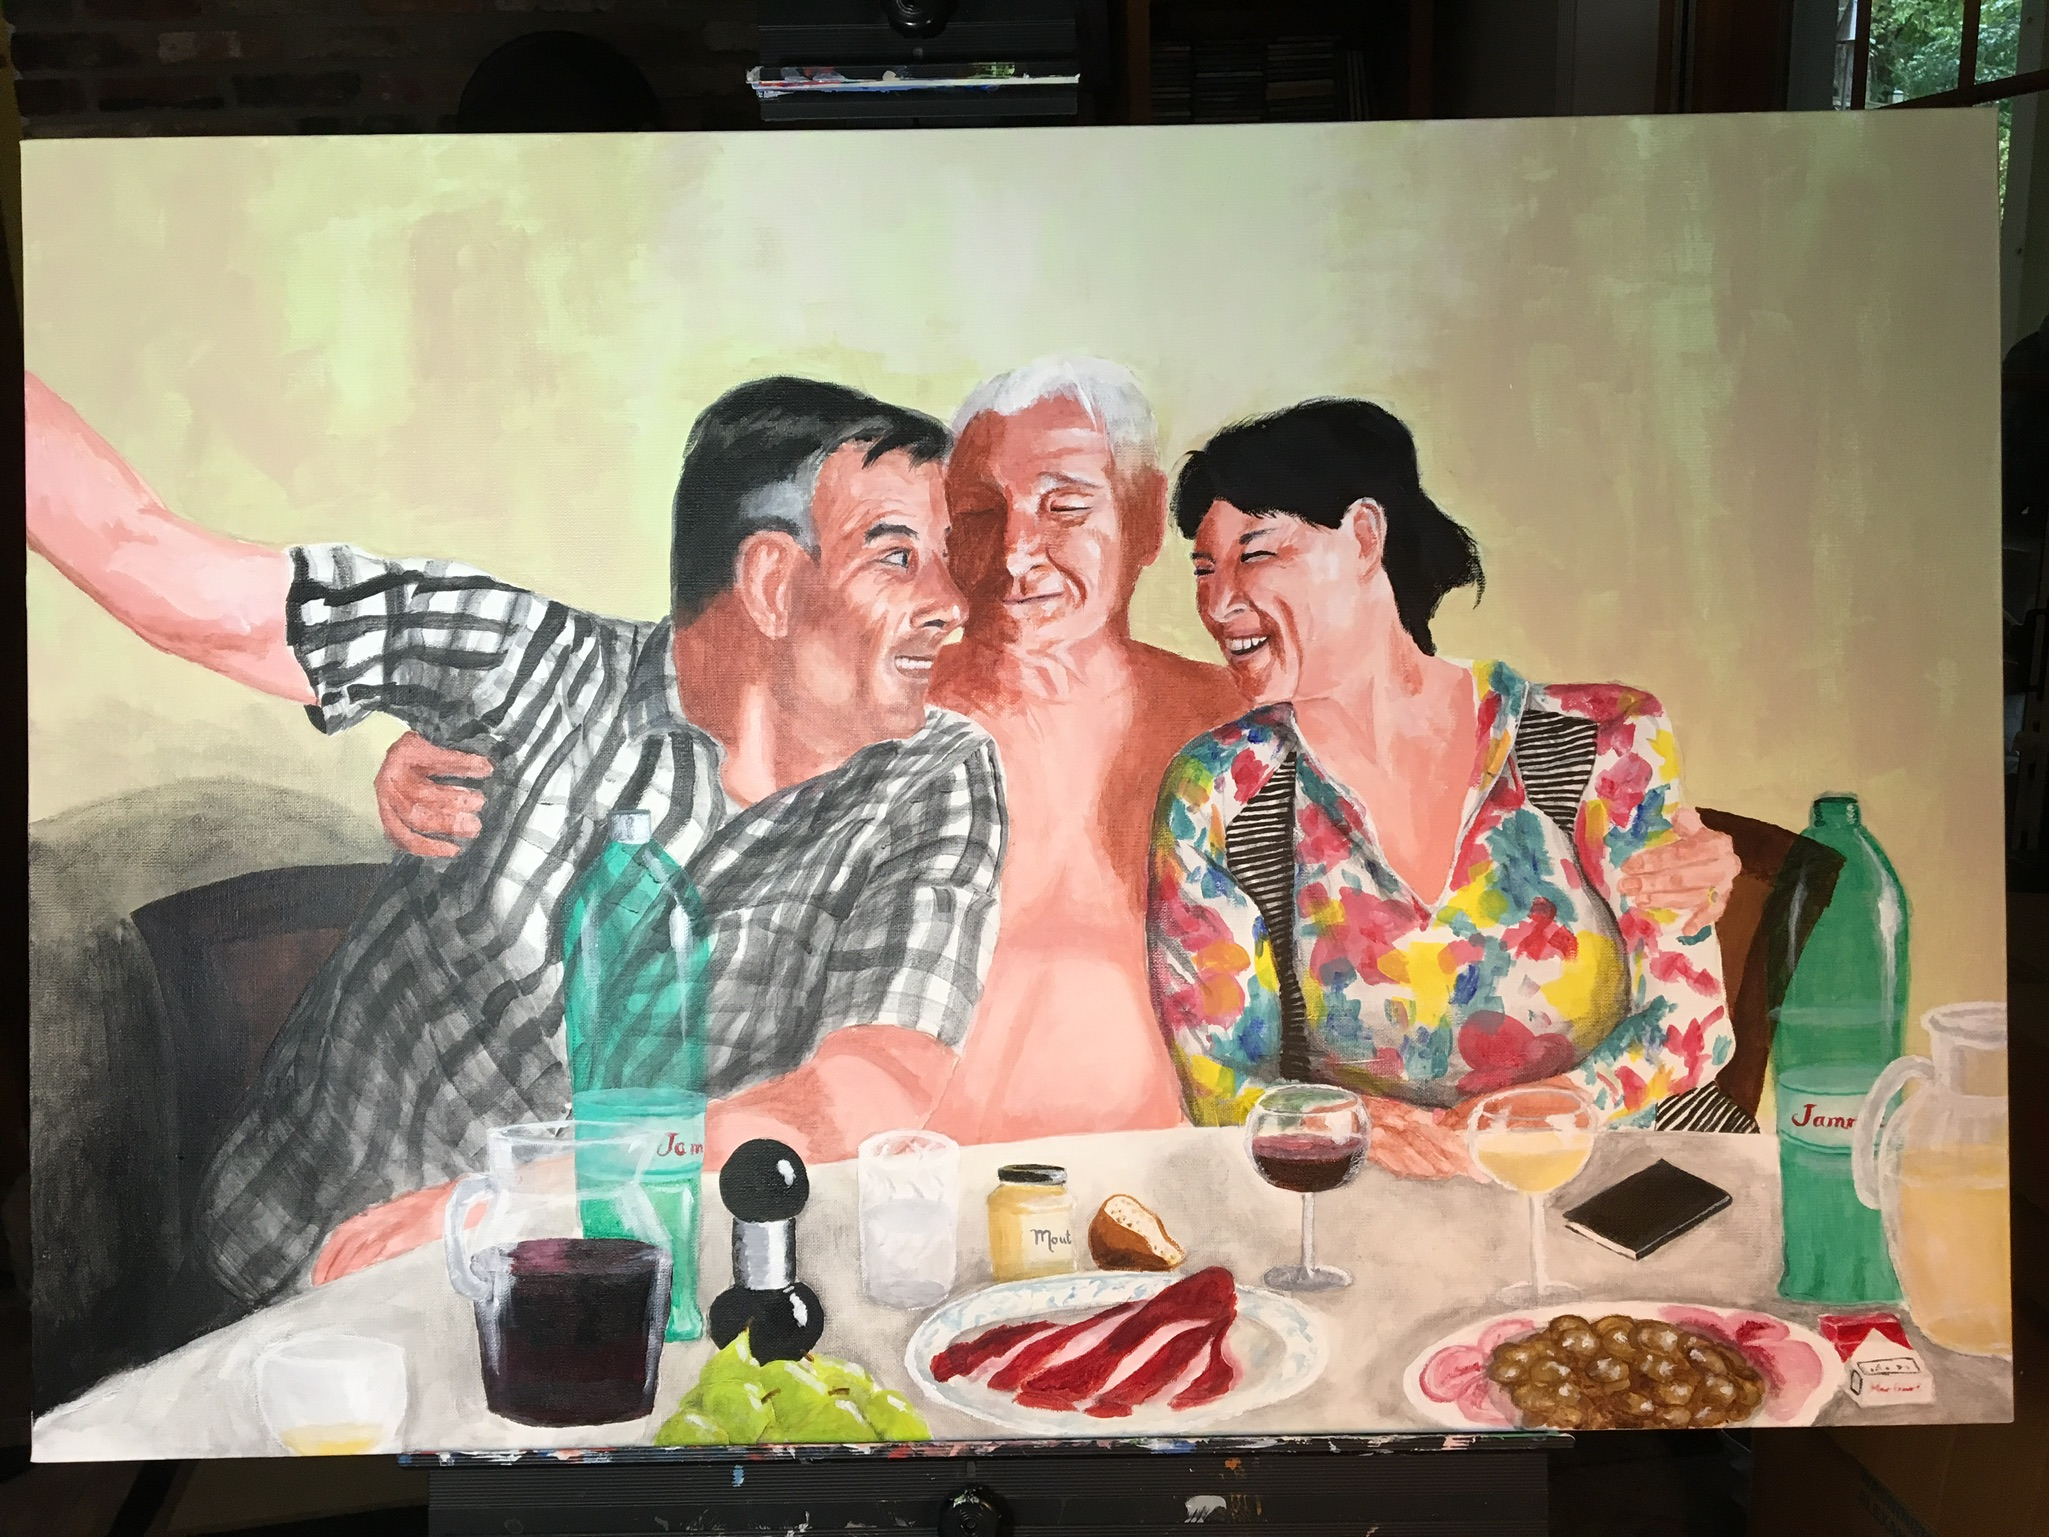 Croatia Reunion, 24x36 in.